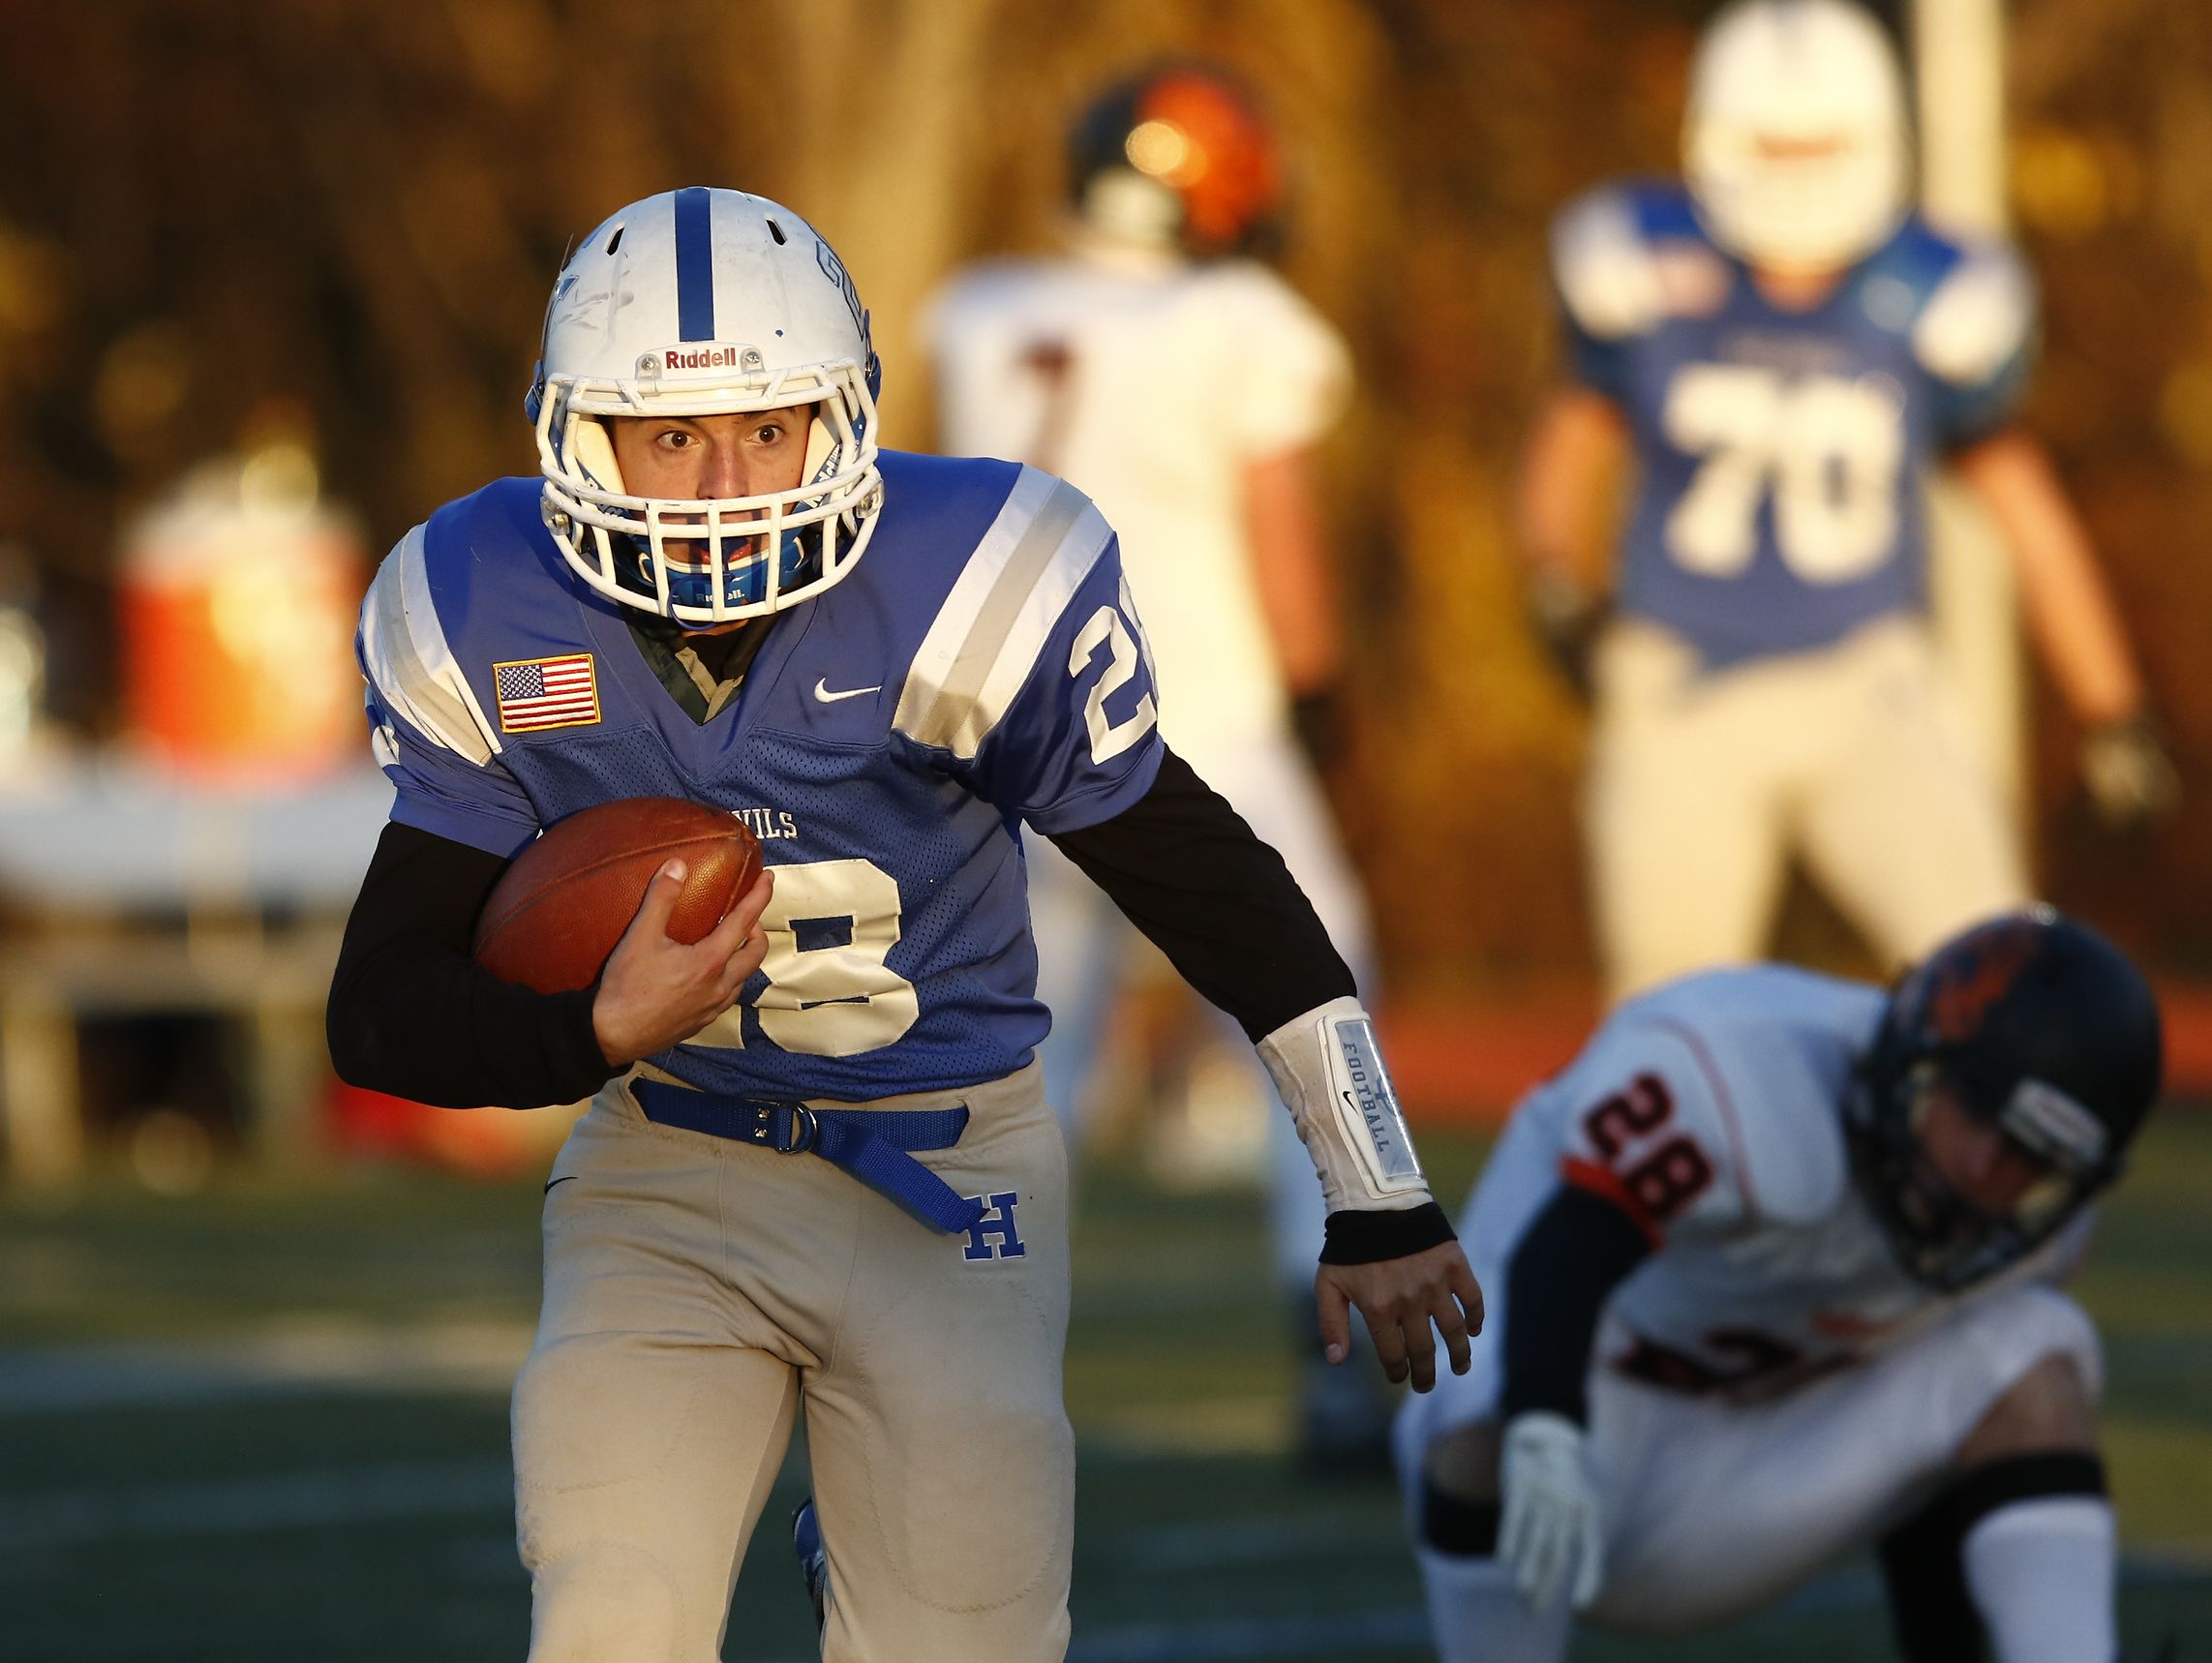 Haldane defeats Tuckahoe 26-6 in the Section 1 Class D championship football game at Mahopac High School on Friday, November 4, 2016.